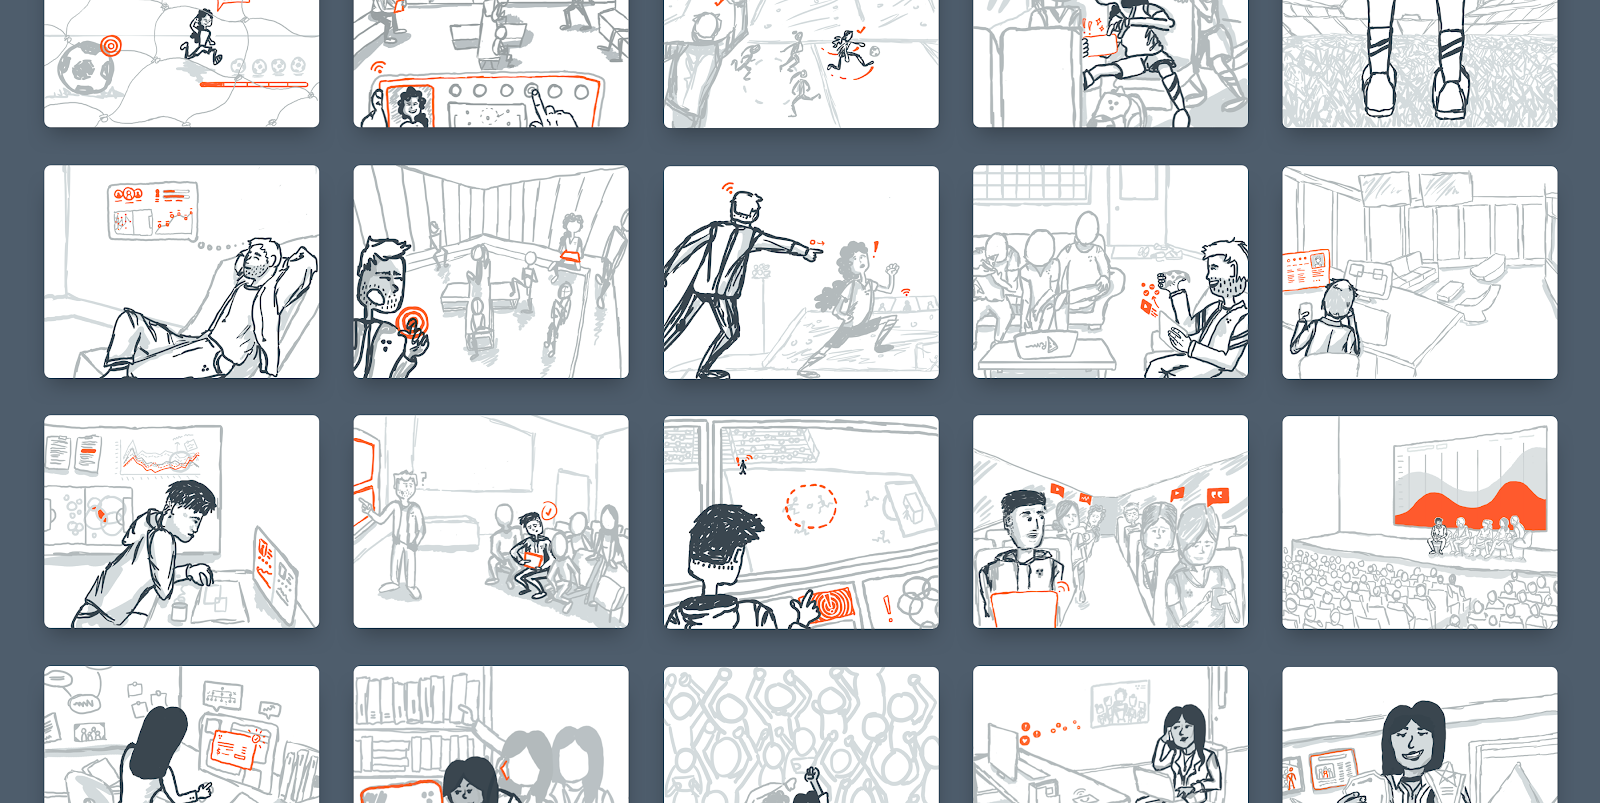 8cfd2ac91 How We Used Storyboards to Make Our Company Vision More Tangible